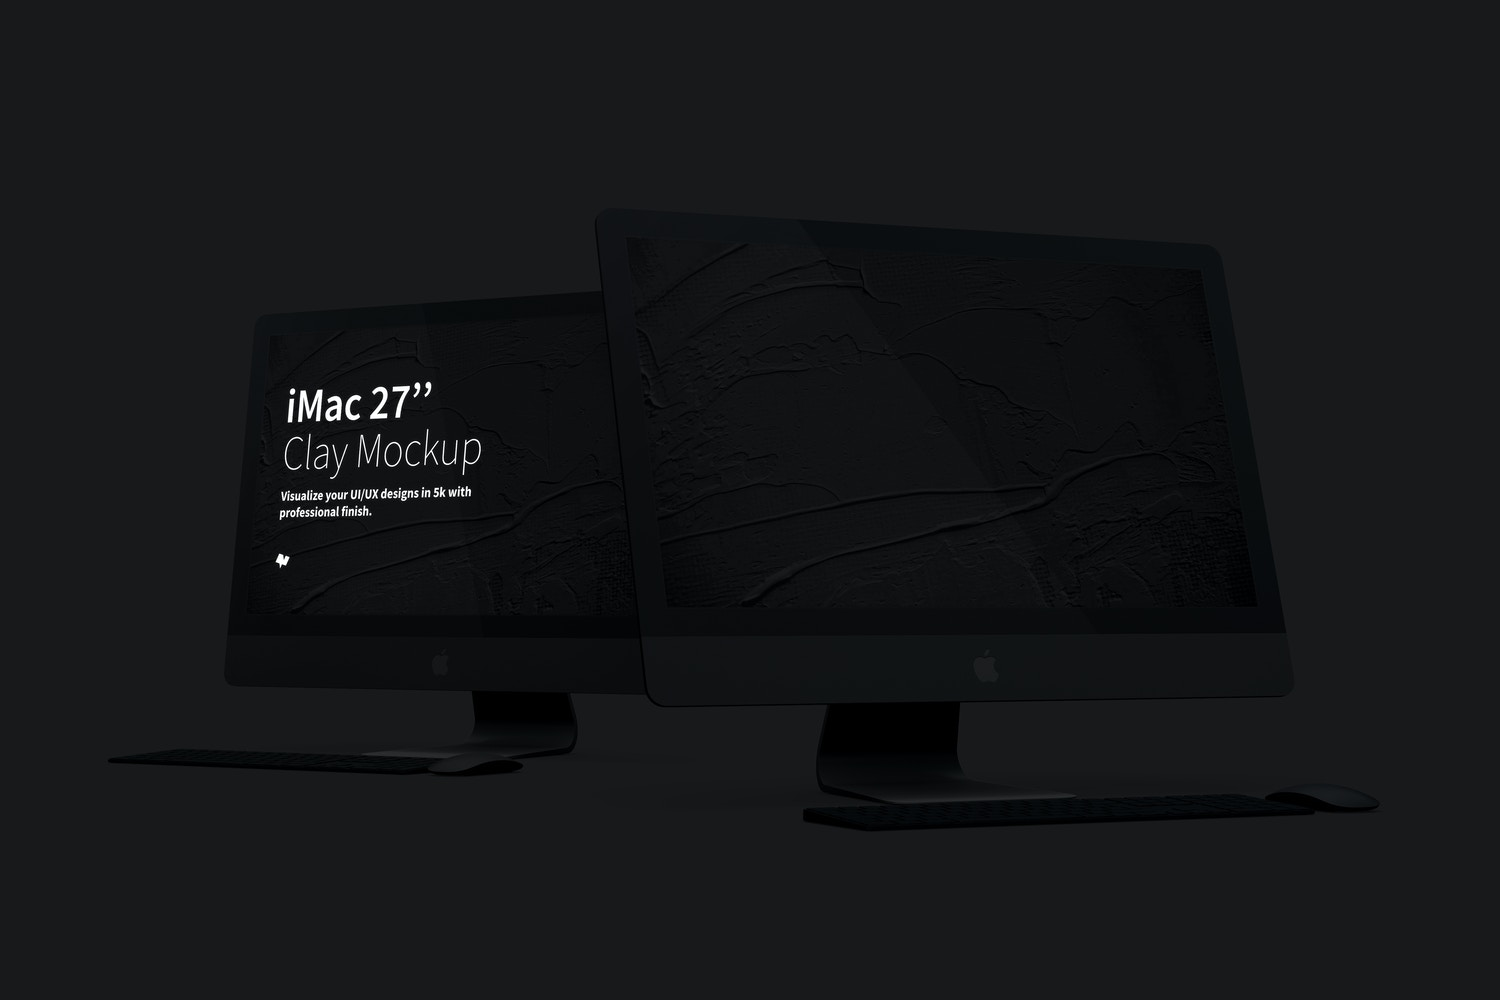 "Clay iMac 27"" Mockup (3) by Original Mockups on Original Mockups"